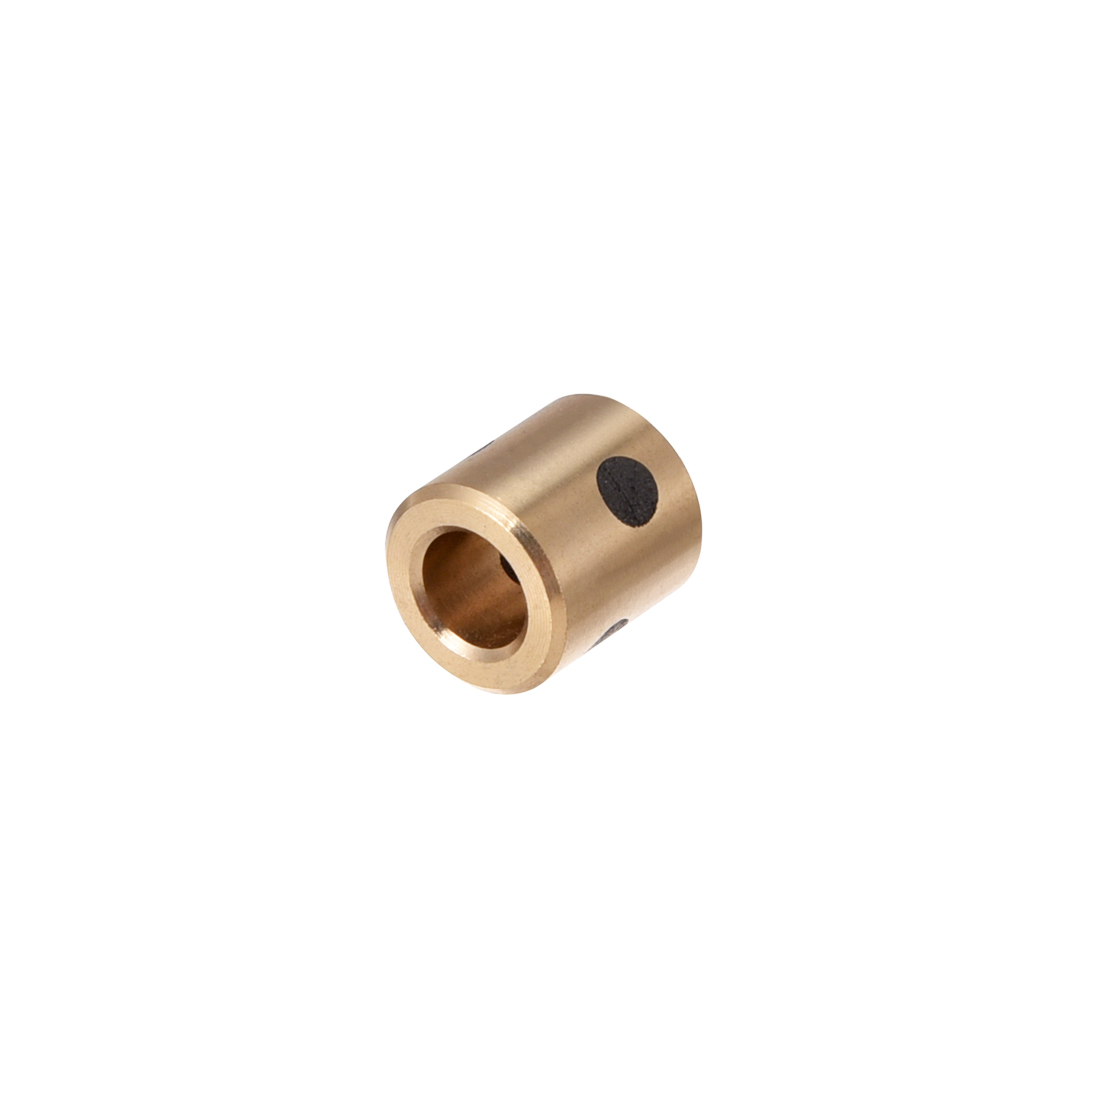 Yellow Raymond 206510000 Chrome Silicon per SV 9254 ISO Die Spring Pack of 10 12.5 mm Rod Fit 161 N//mm Spring Rate 64 mm Free Length 25 mm Hole Fit 48 mm Solid Height